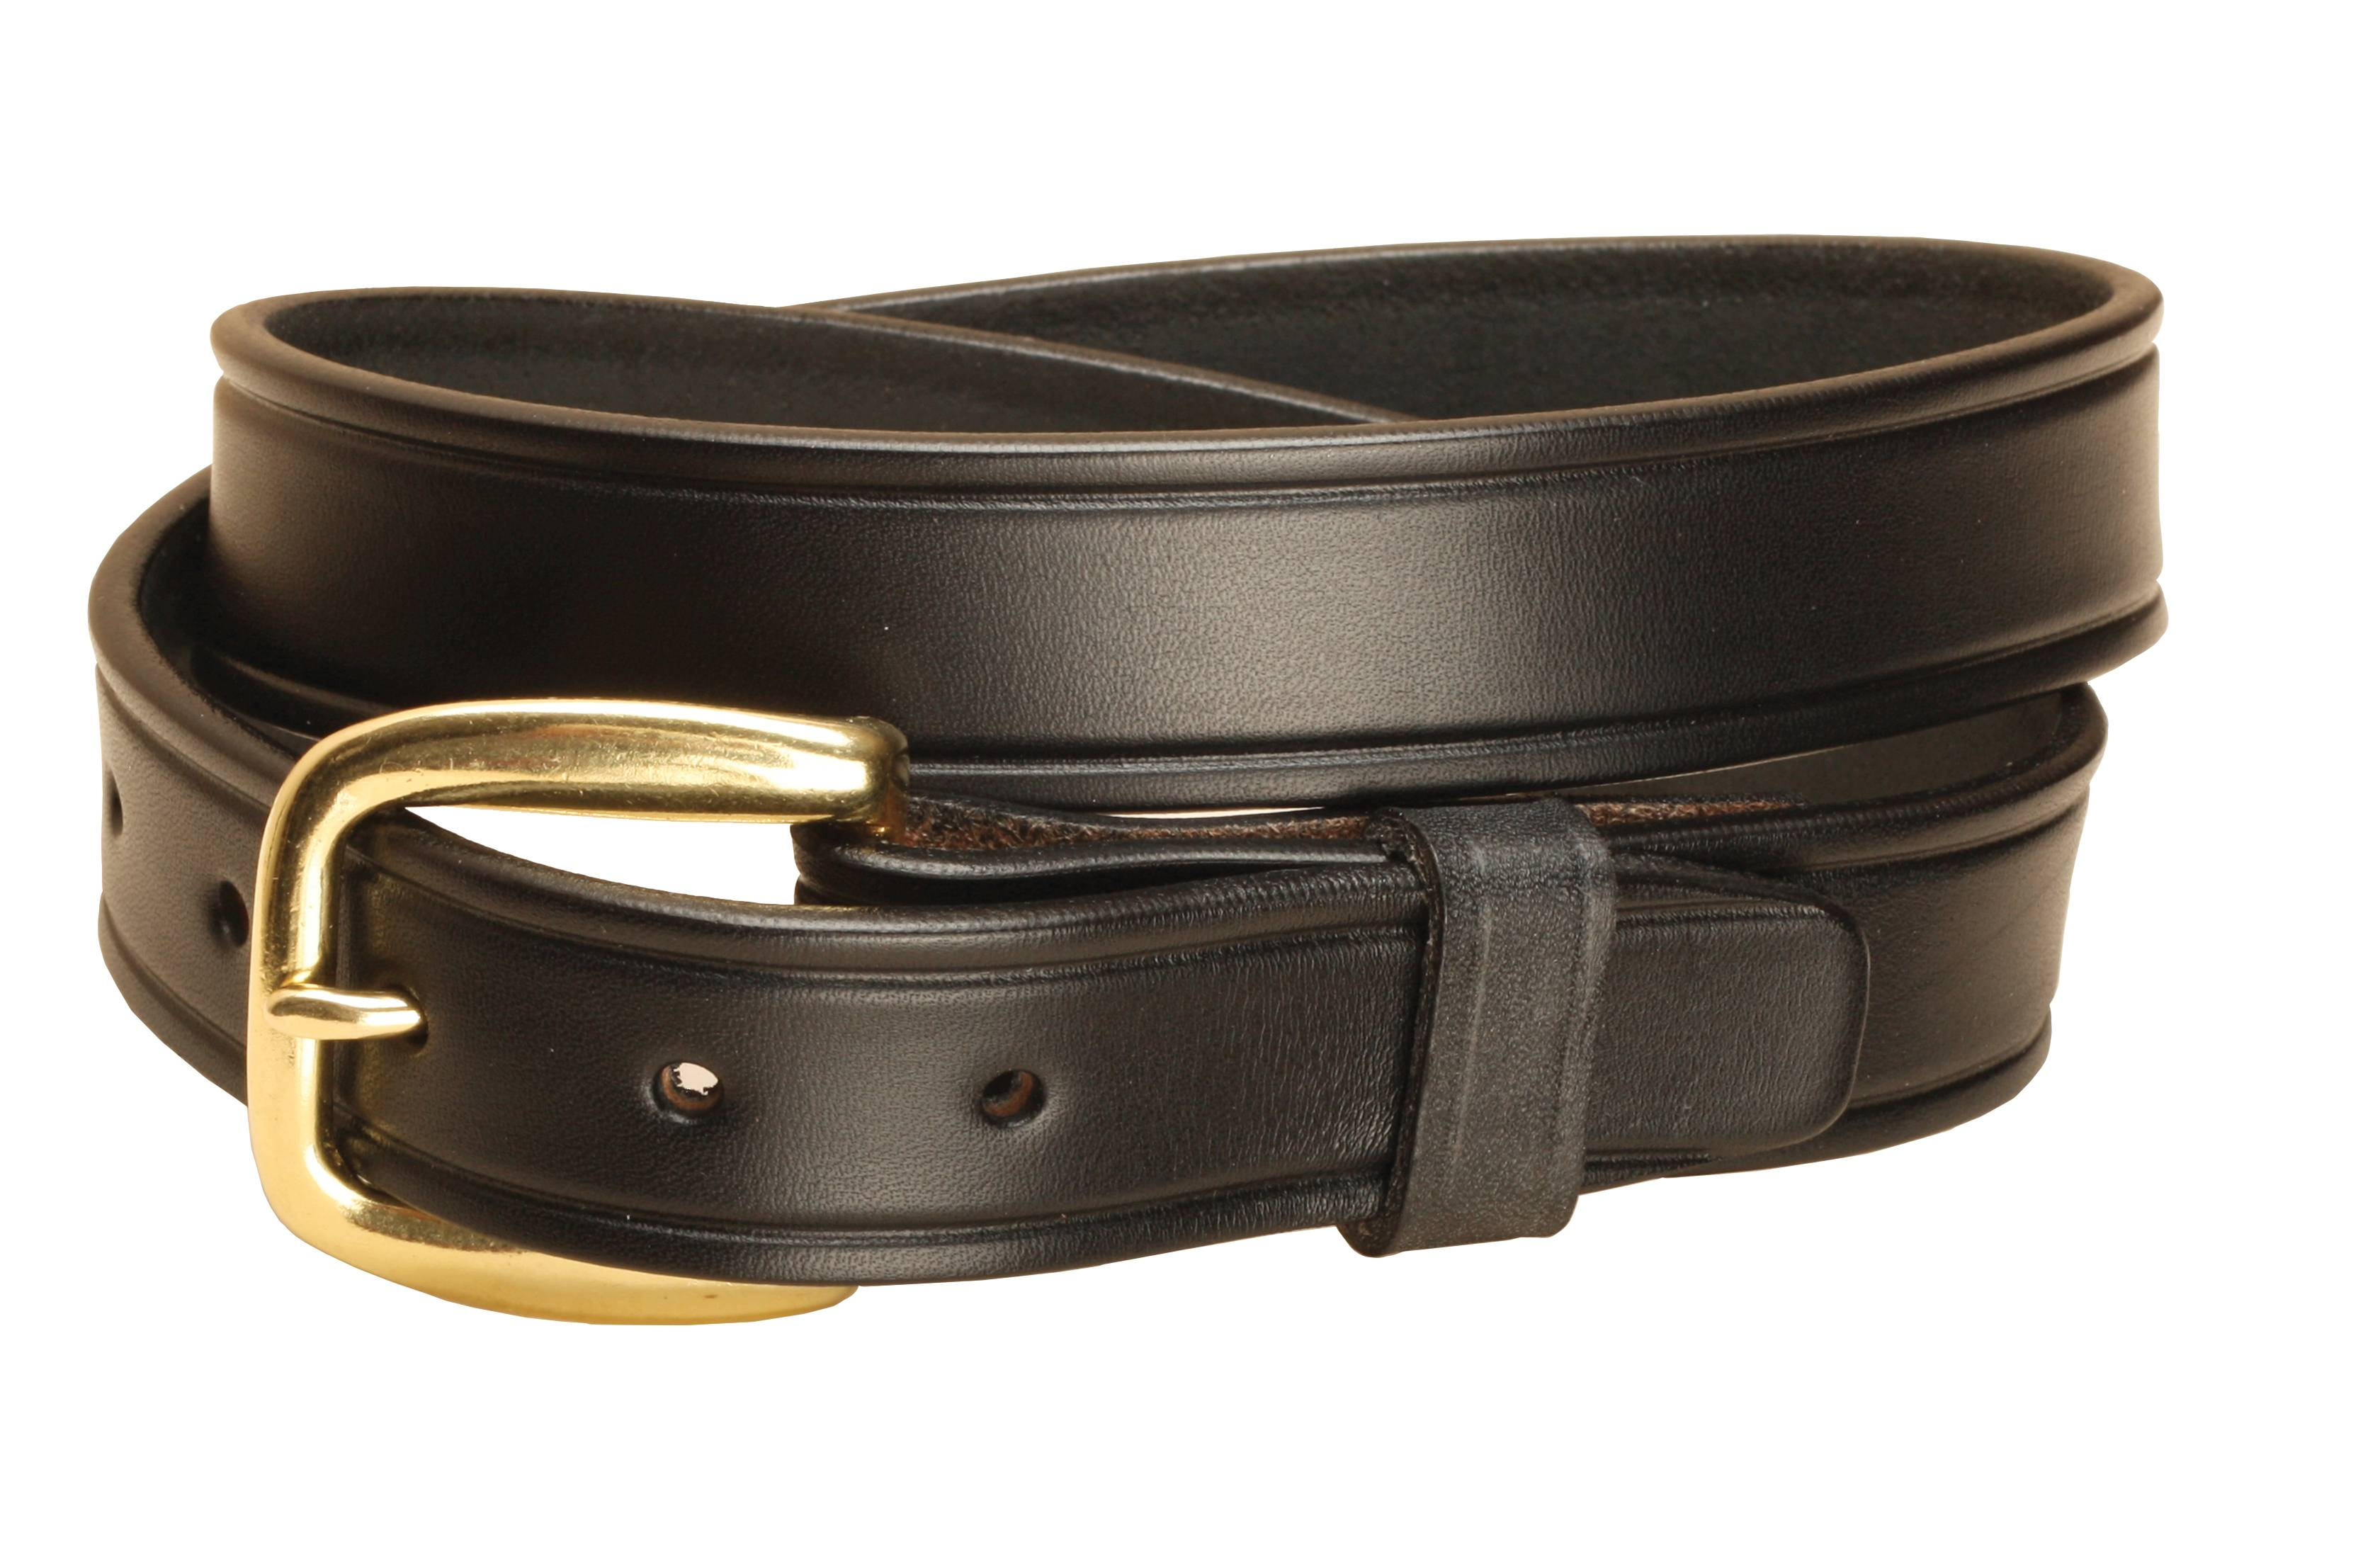 TORY LEATHER 1 1/4'' Plain Belt with Brass Buckle